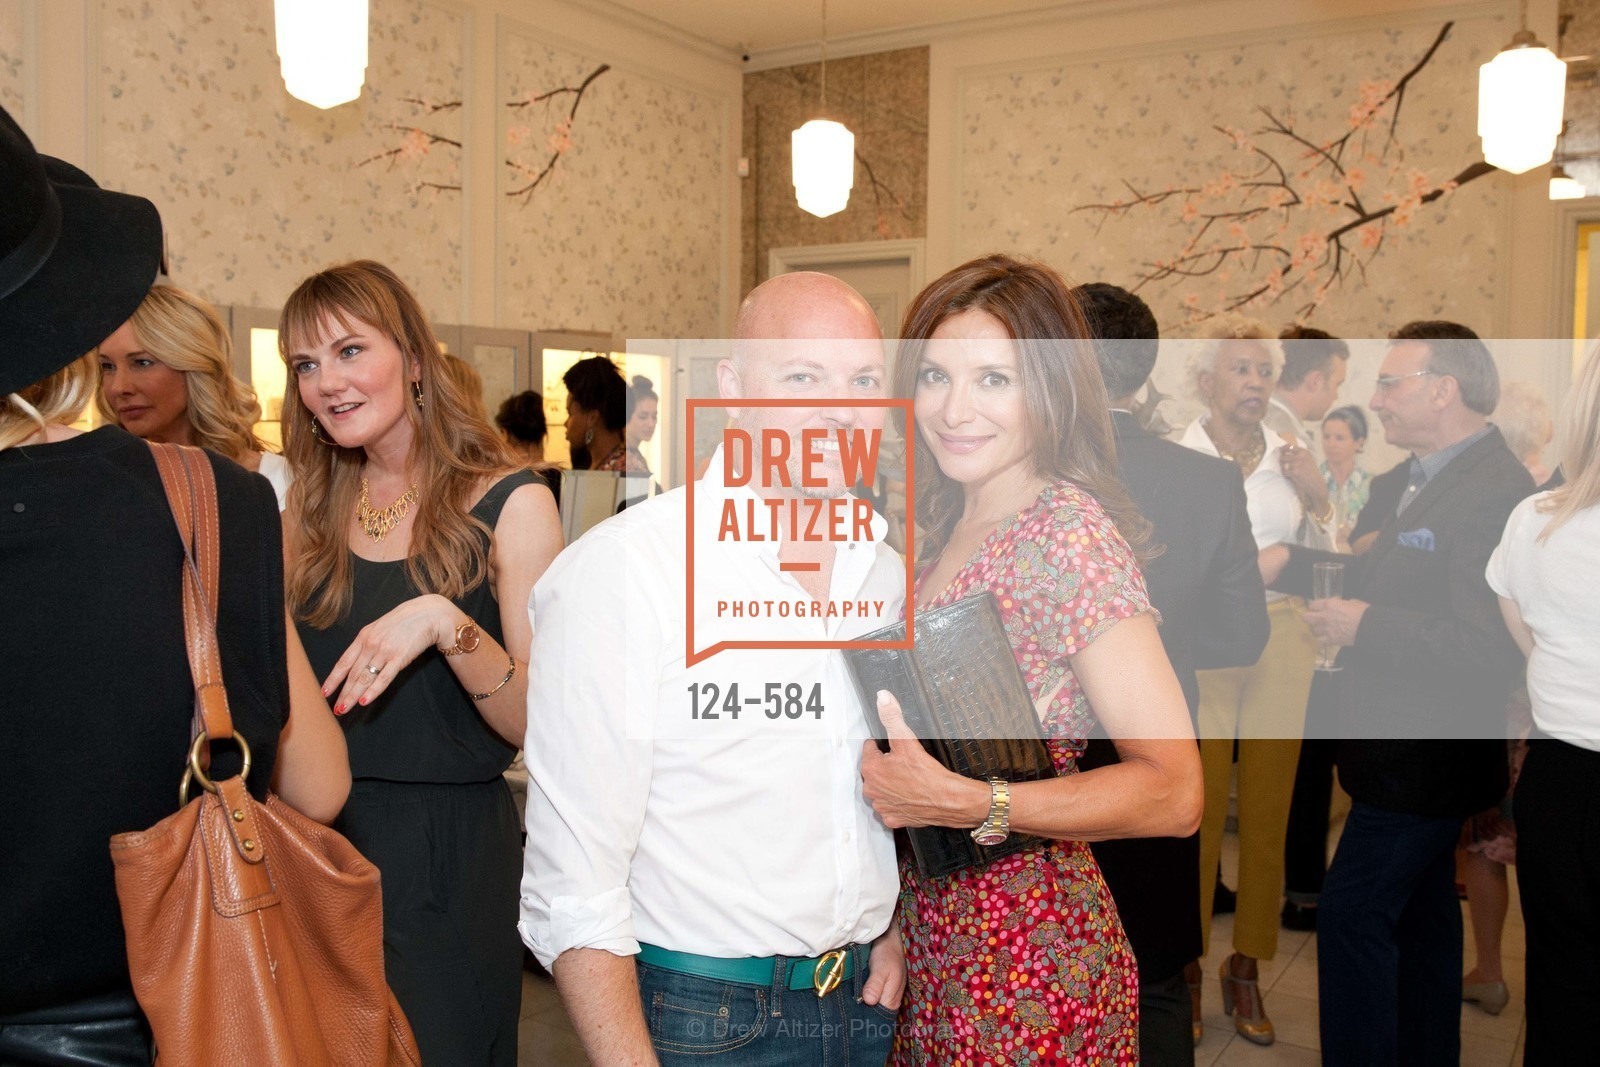 David Nash, Claudia Ross, Alexis Bittar Event; Support of the San Francisco Fall Antique Show Benefitting Enterprise for High School Students Francisco Fall Antique Show, benefiting Enterprise for High School Students, US, October 2nd, 2014,Drew Altizer, Drew Altizer Photography, full-service agency, private events, San Francisco photographer, photographer california